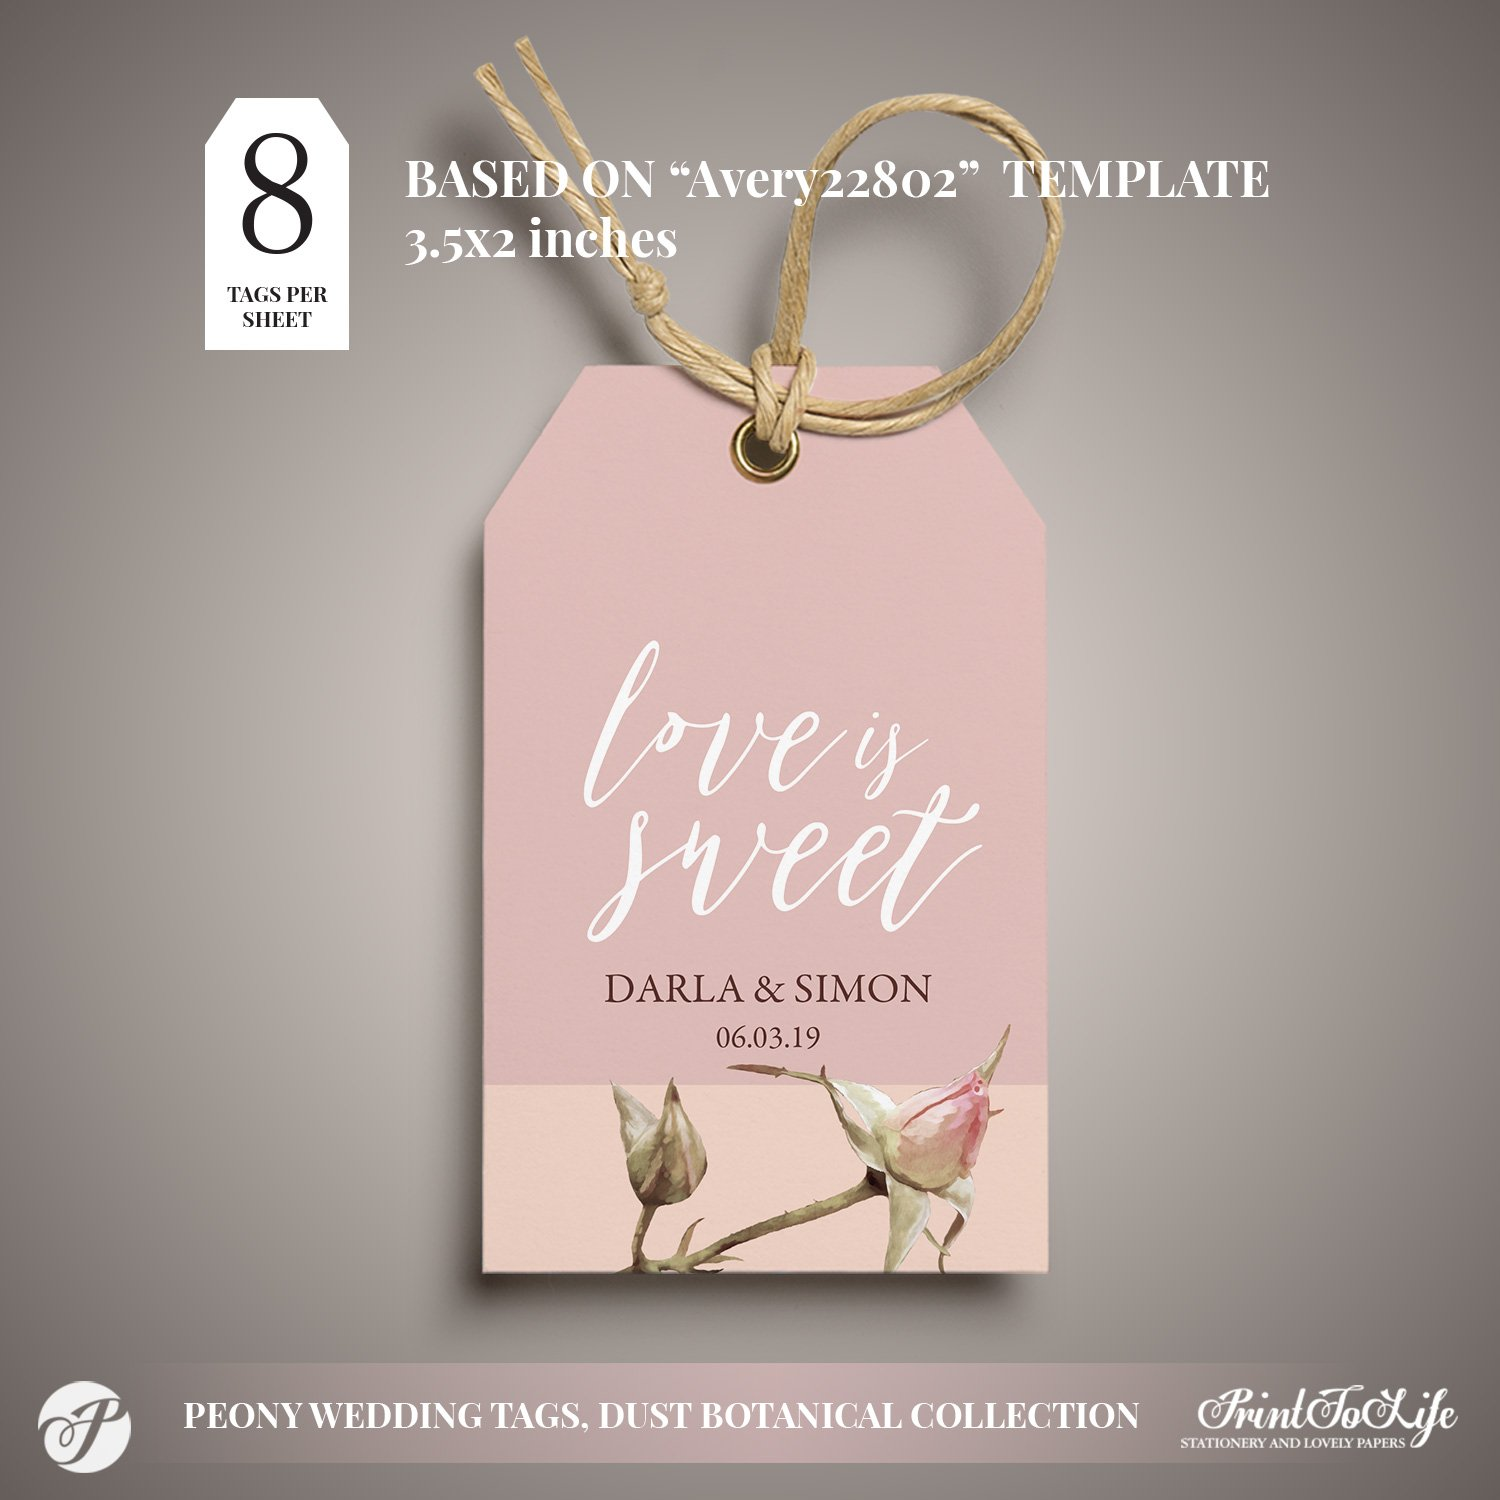 love is sweet gift tag by Printolife